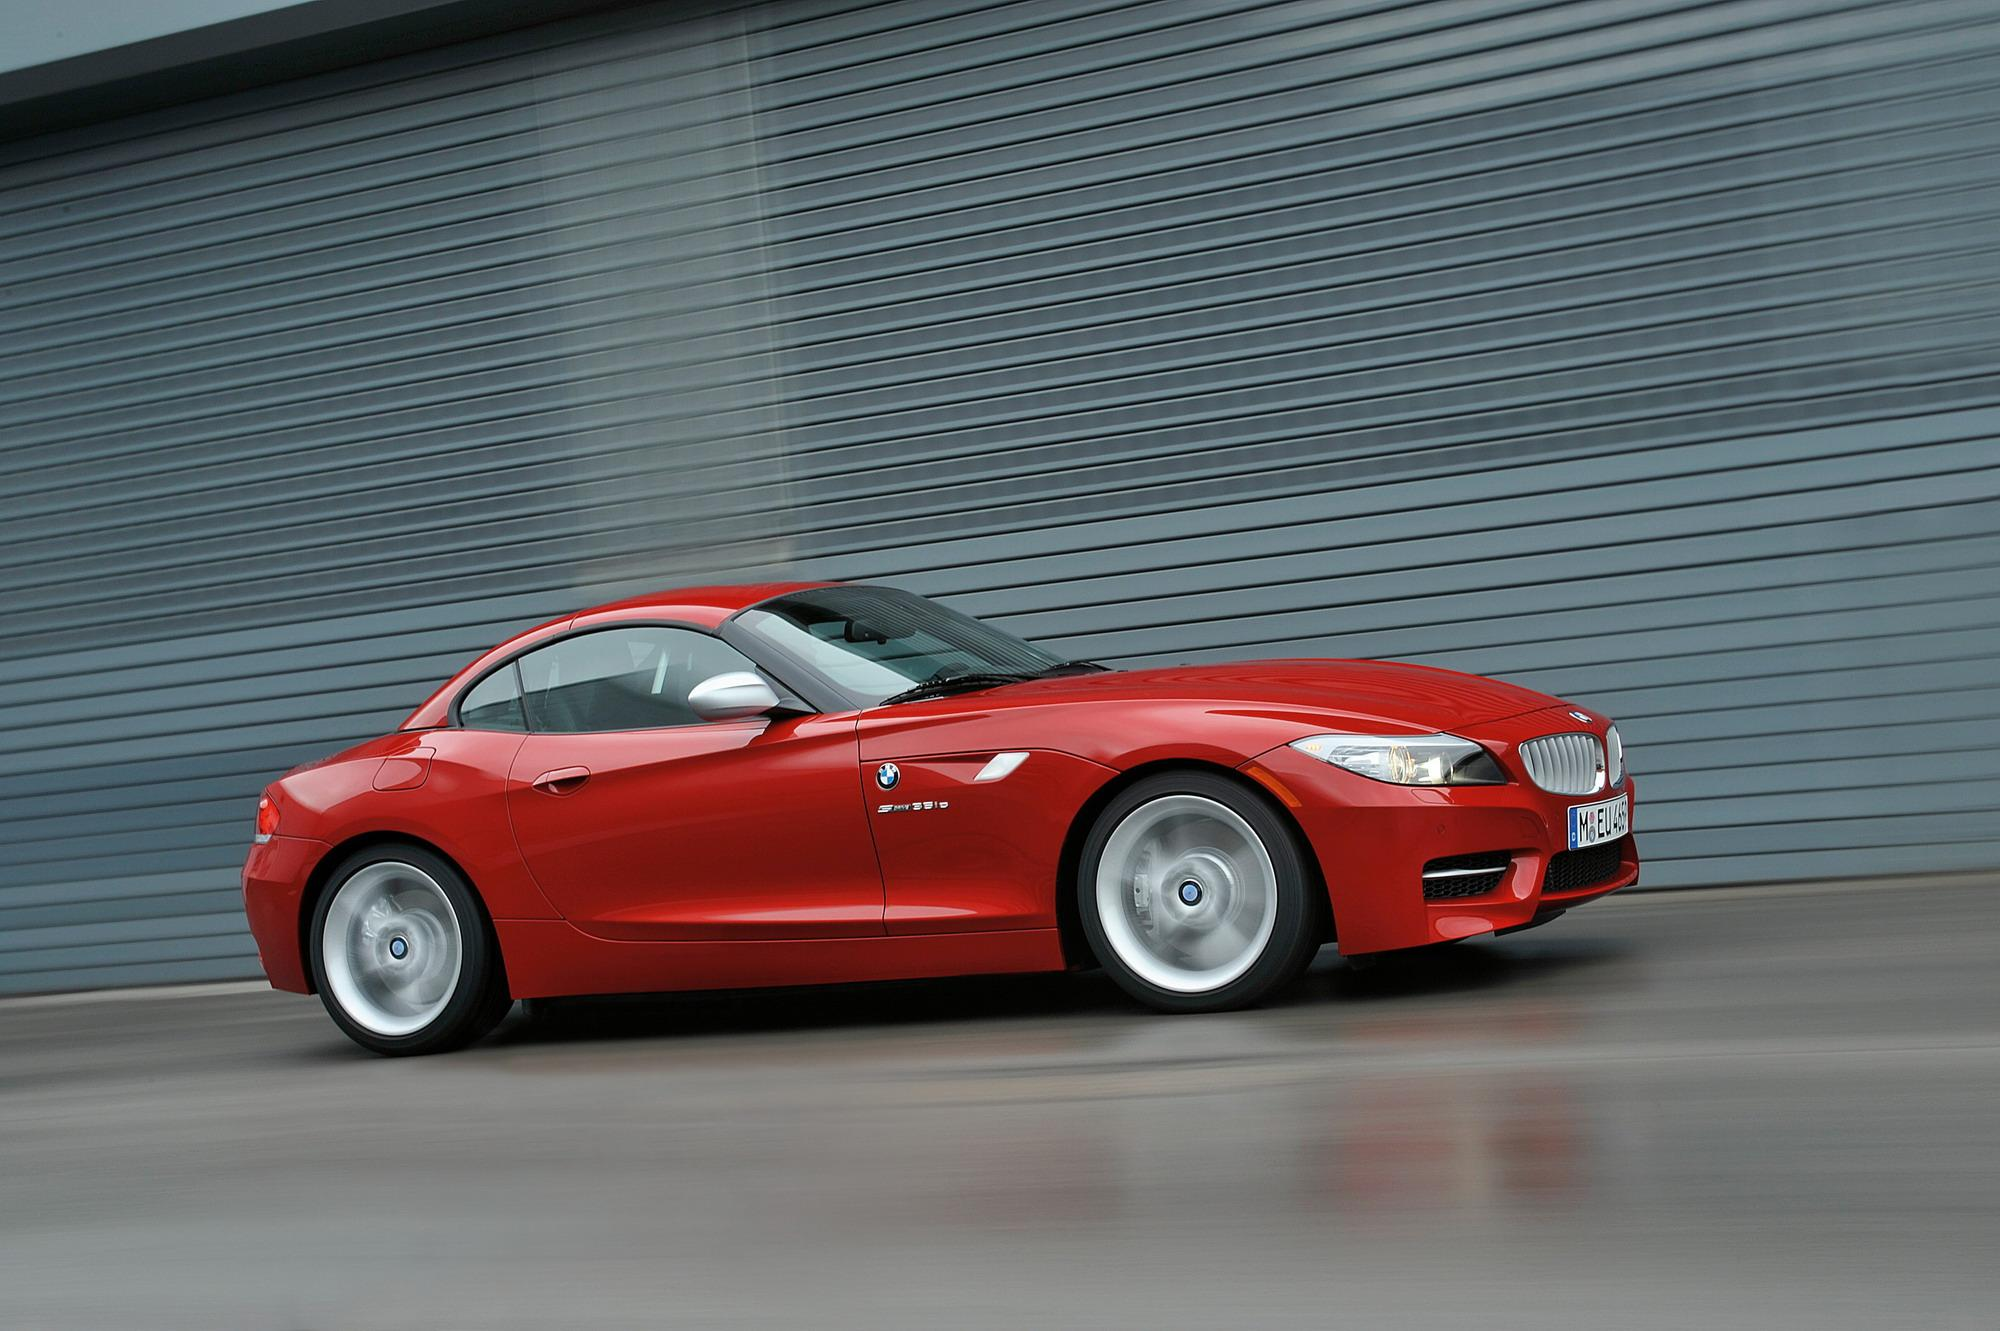 2011 bmw z4 sdrive35is gallery 338536 top speed. Black Bedroom Furniture Sets. Home Design Ideas